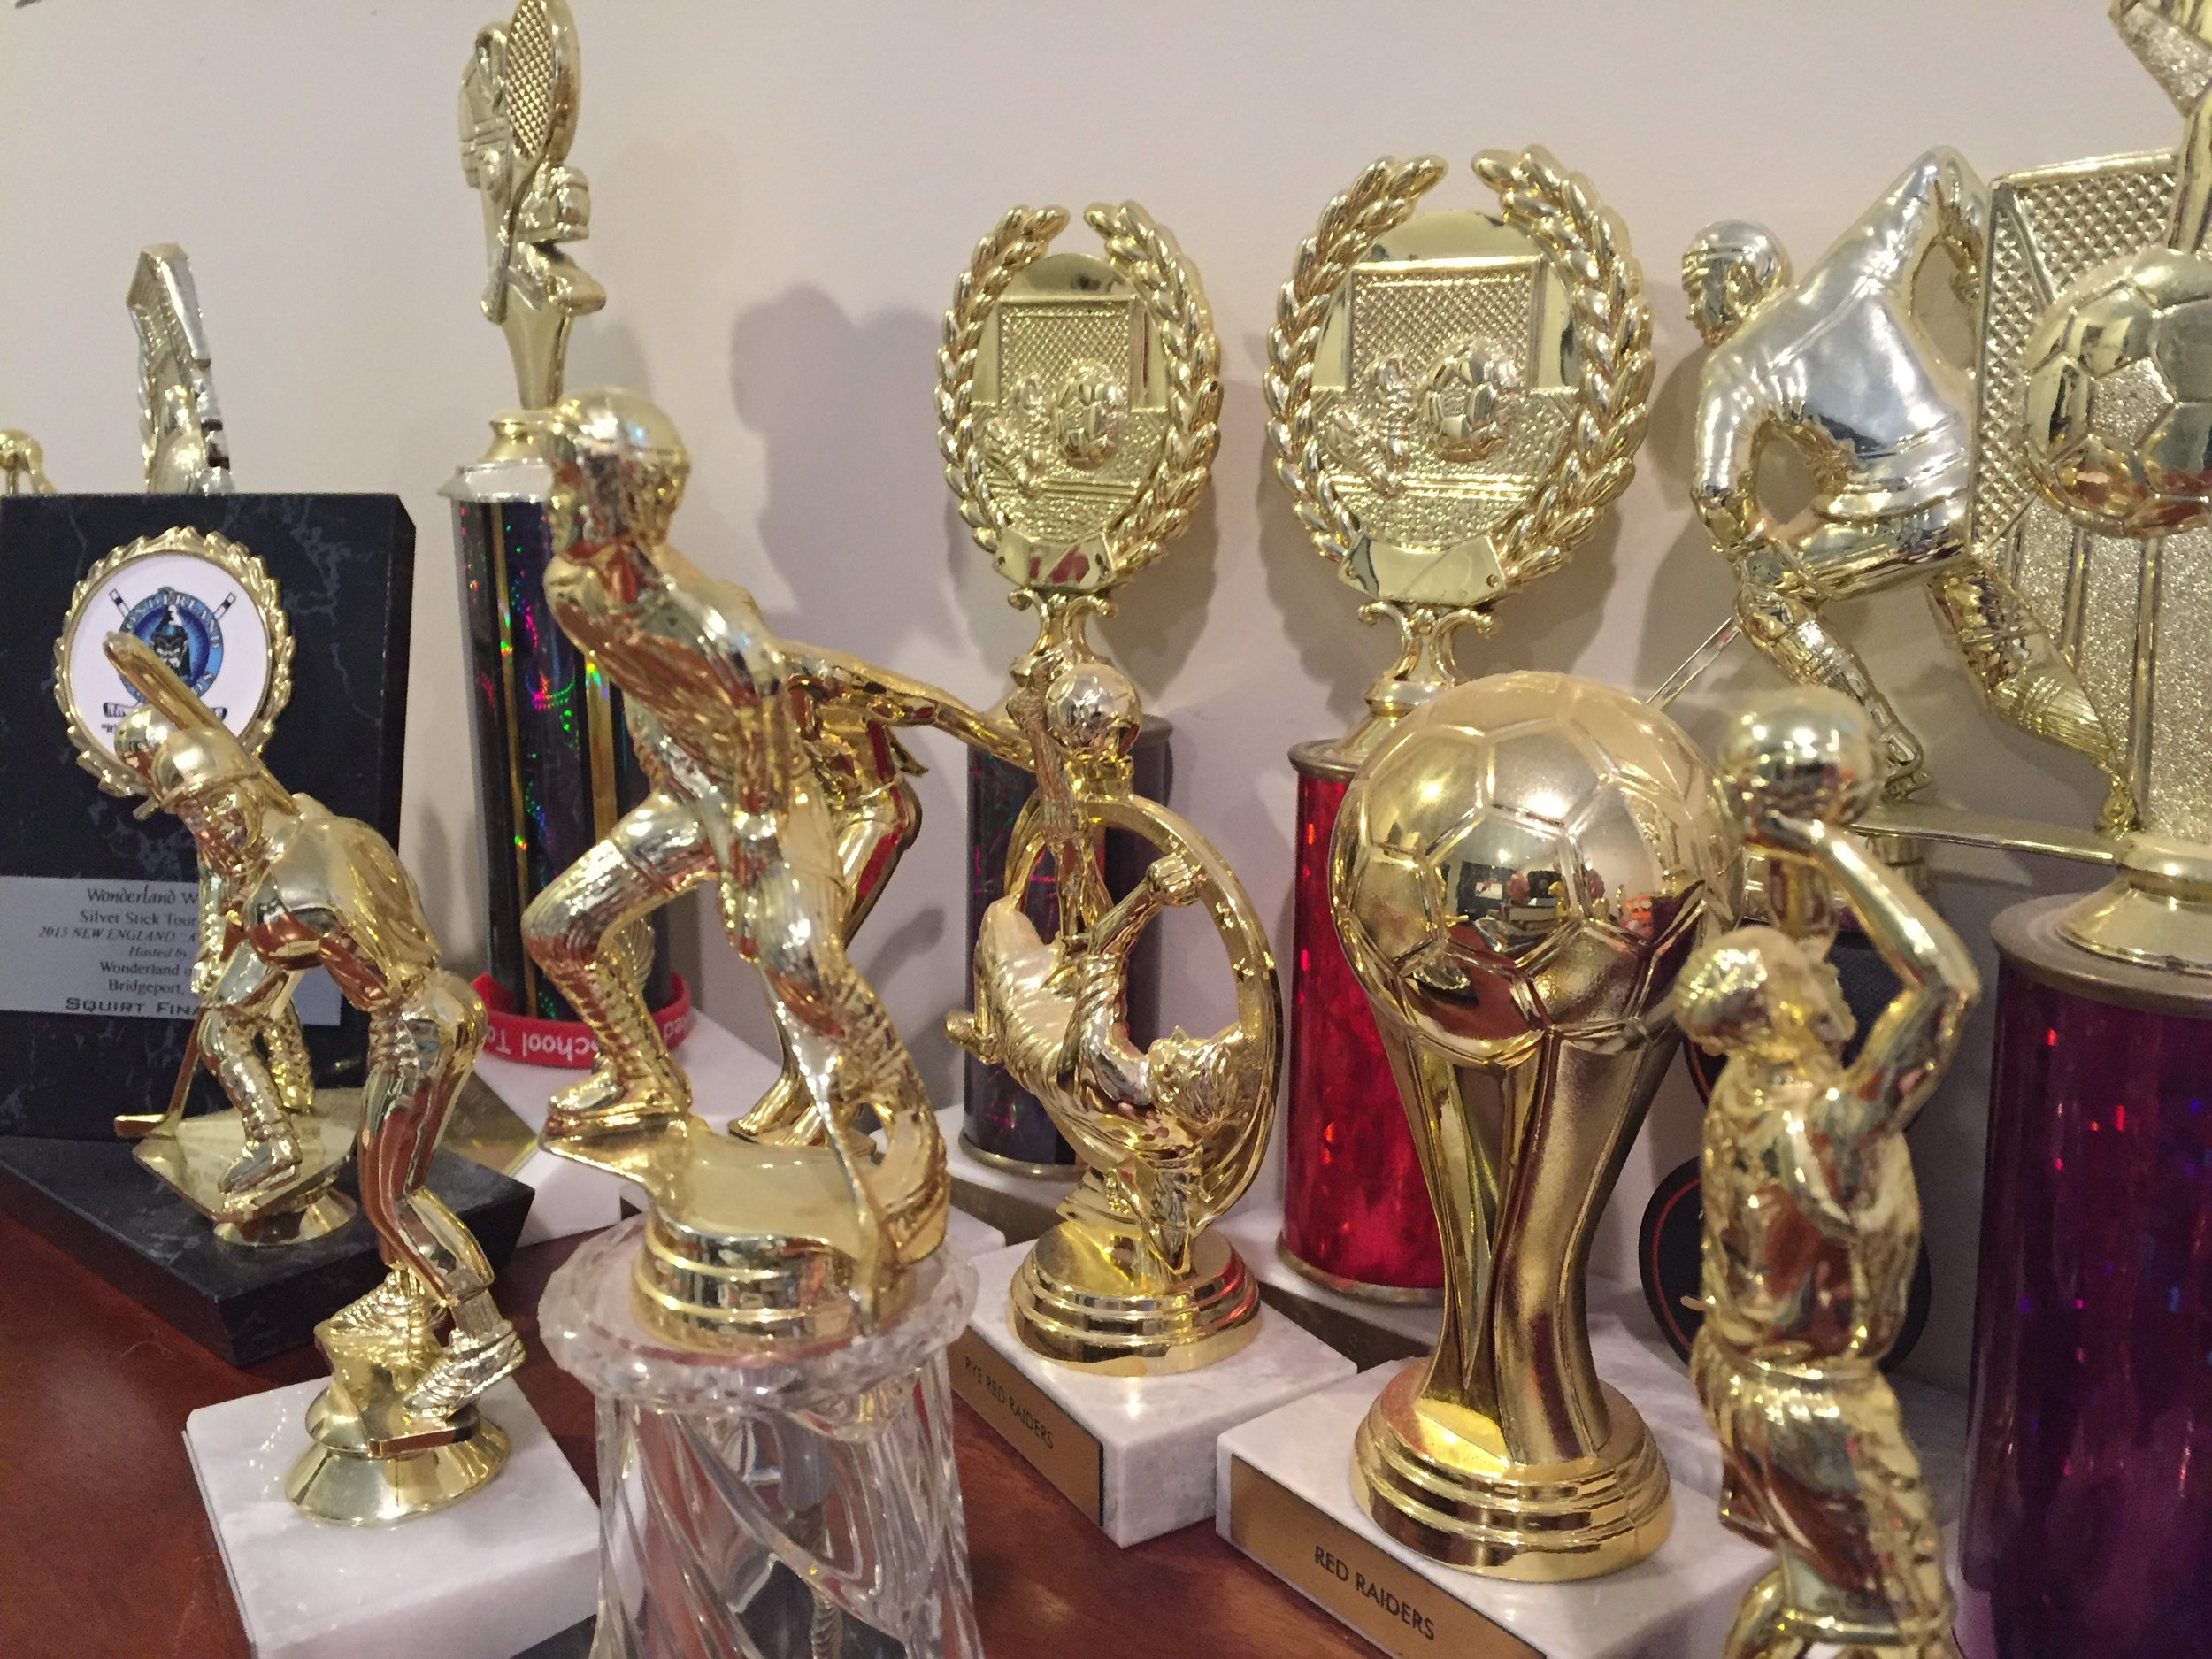 My sons' collection of trophies, mostly just for showing up.